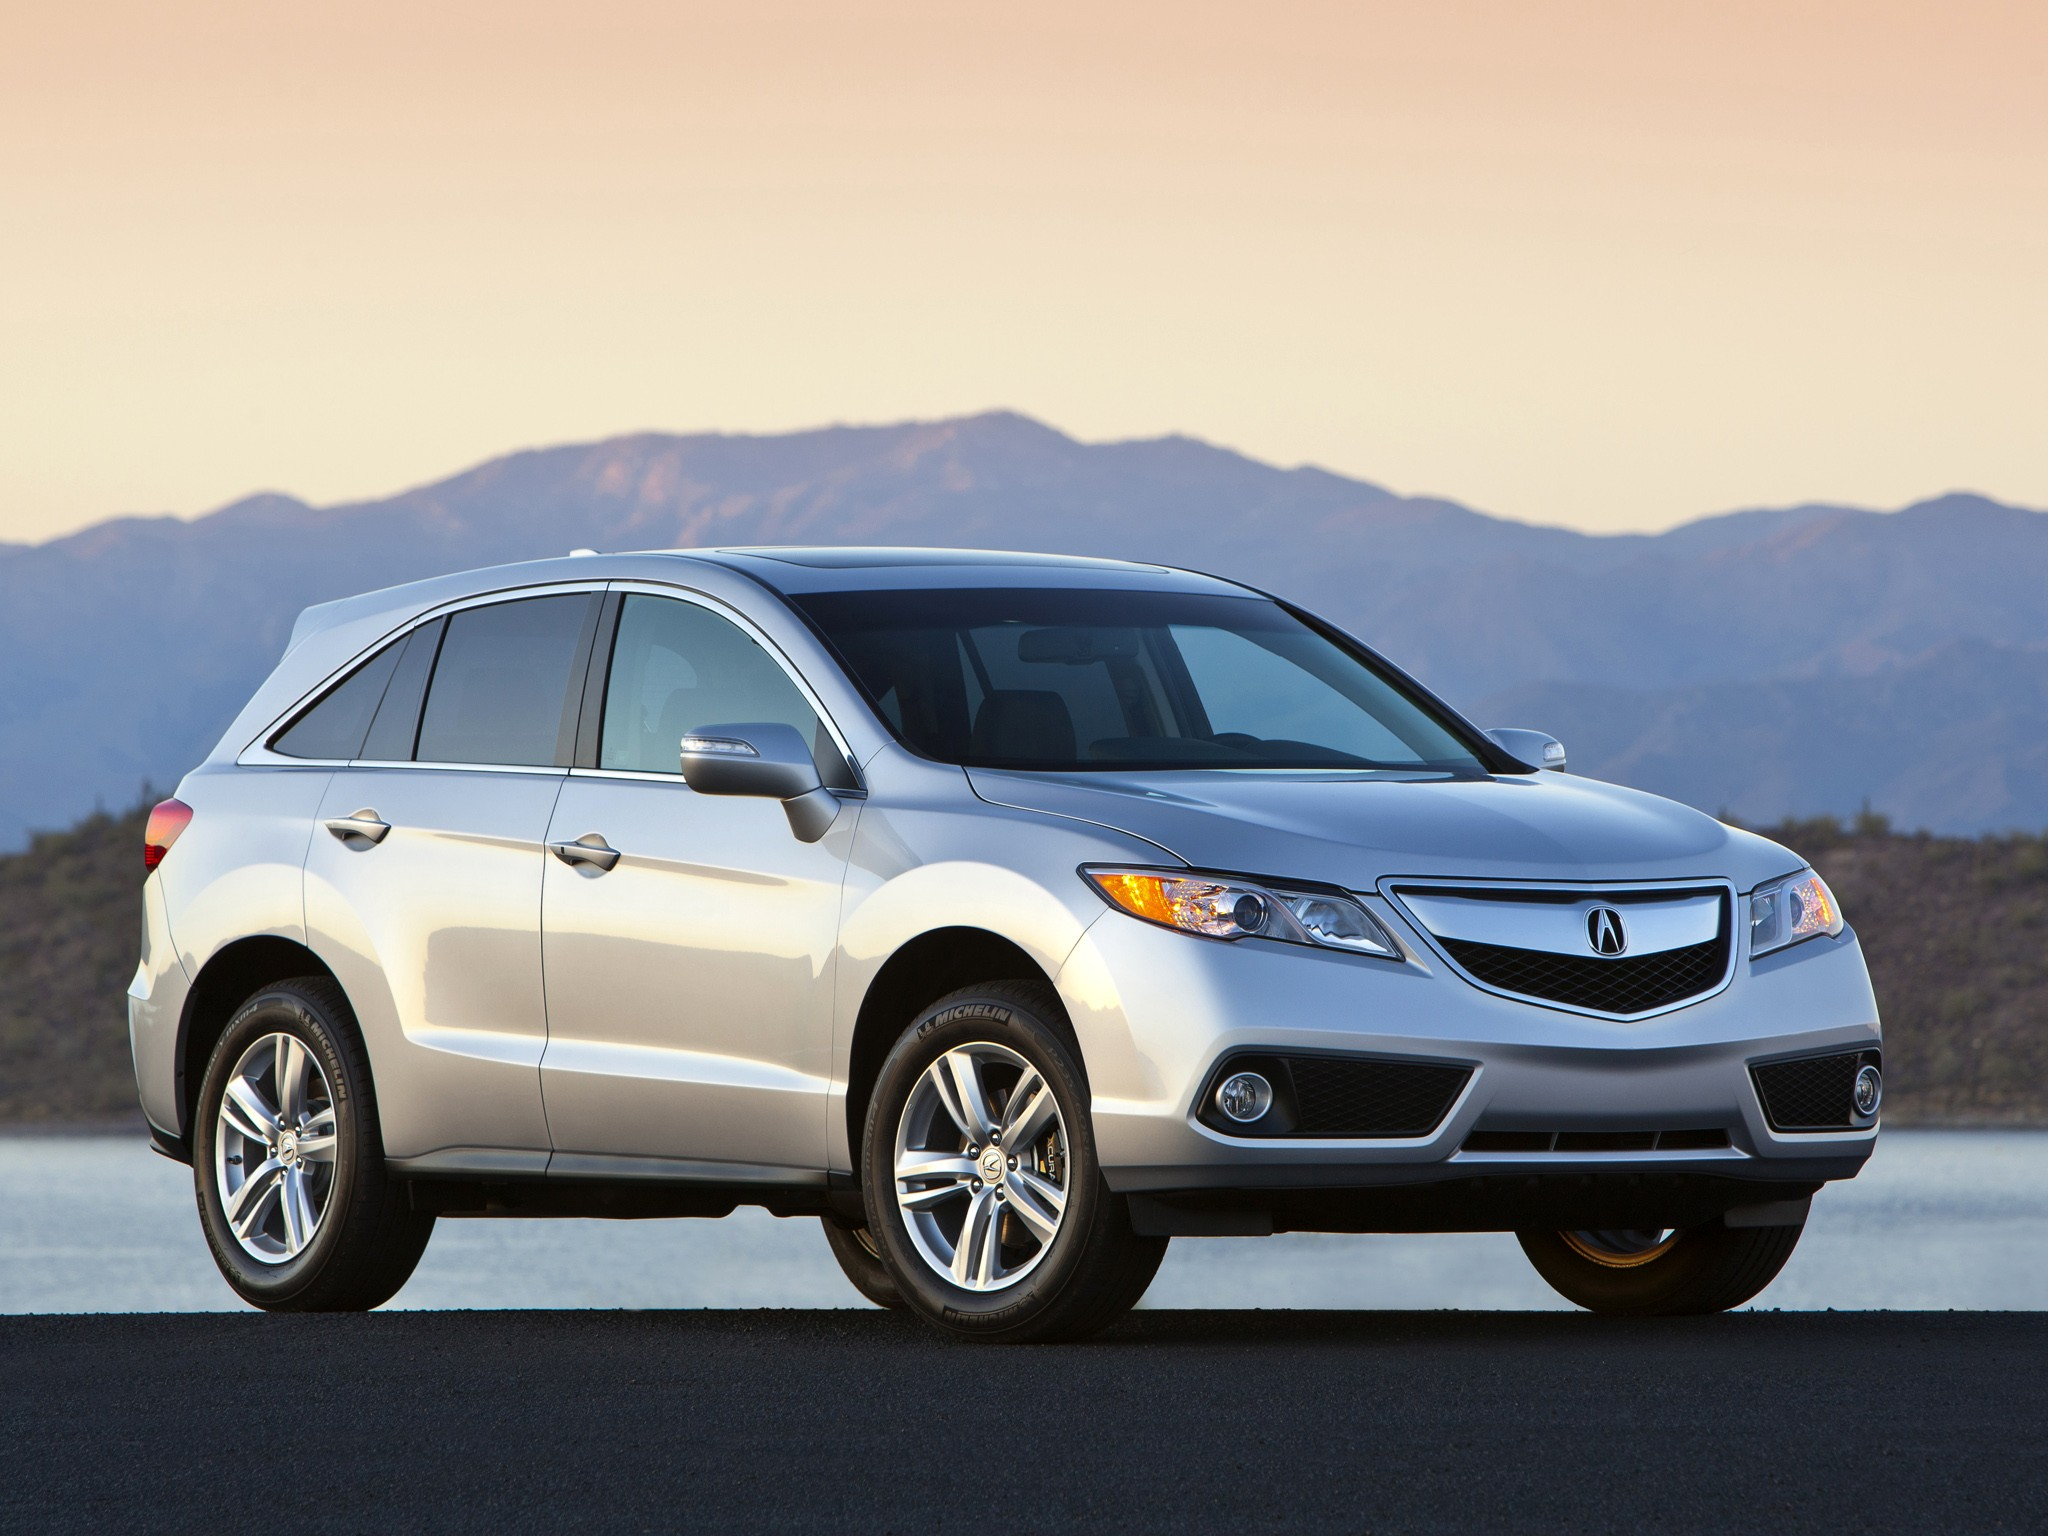 acura rdx specs 2012 2013 2014 2015 autoevolution. Black Bedroom Furniture Sets. Home Design Ideas